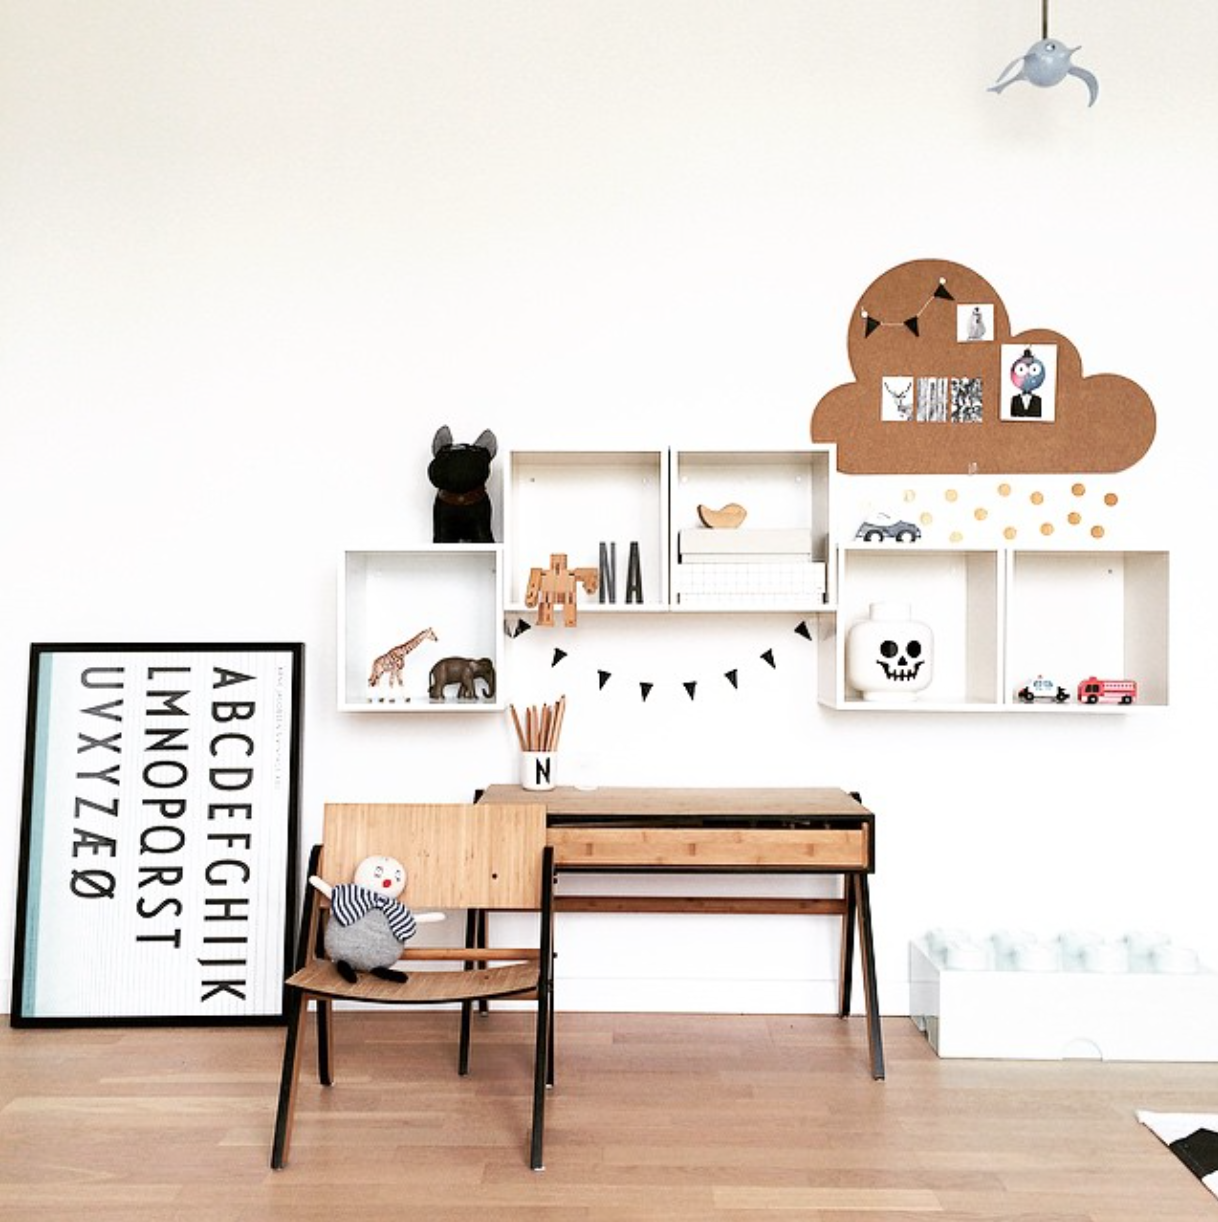 Scandinavian Style Kids Room: Monochrome Scandinavian Kids Room Tour - CK